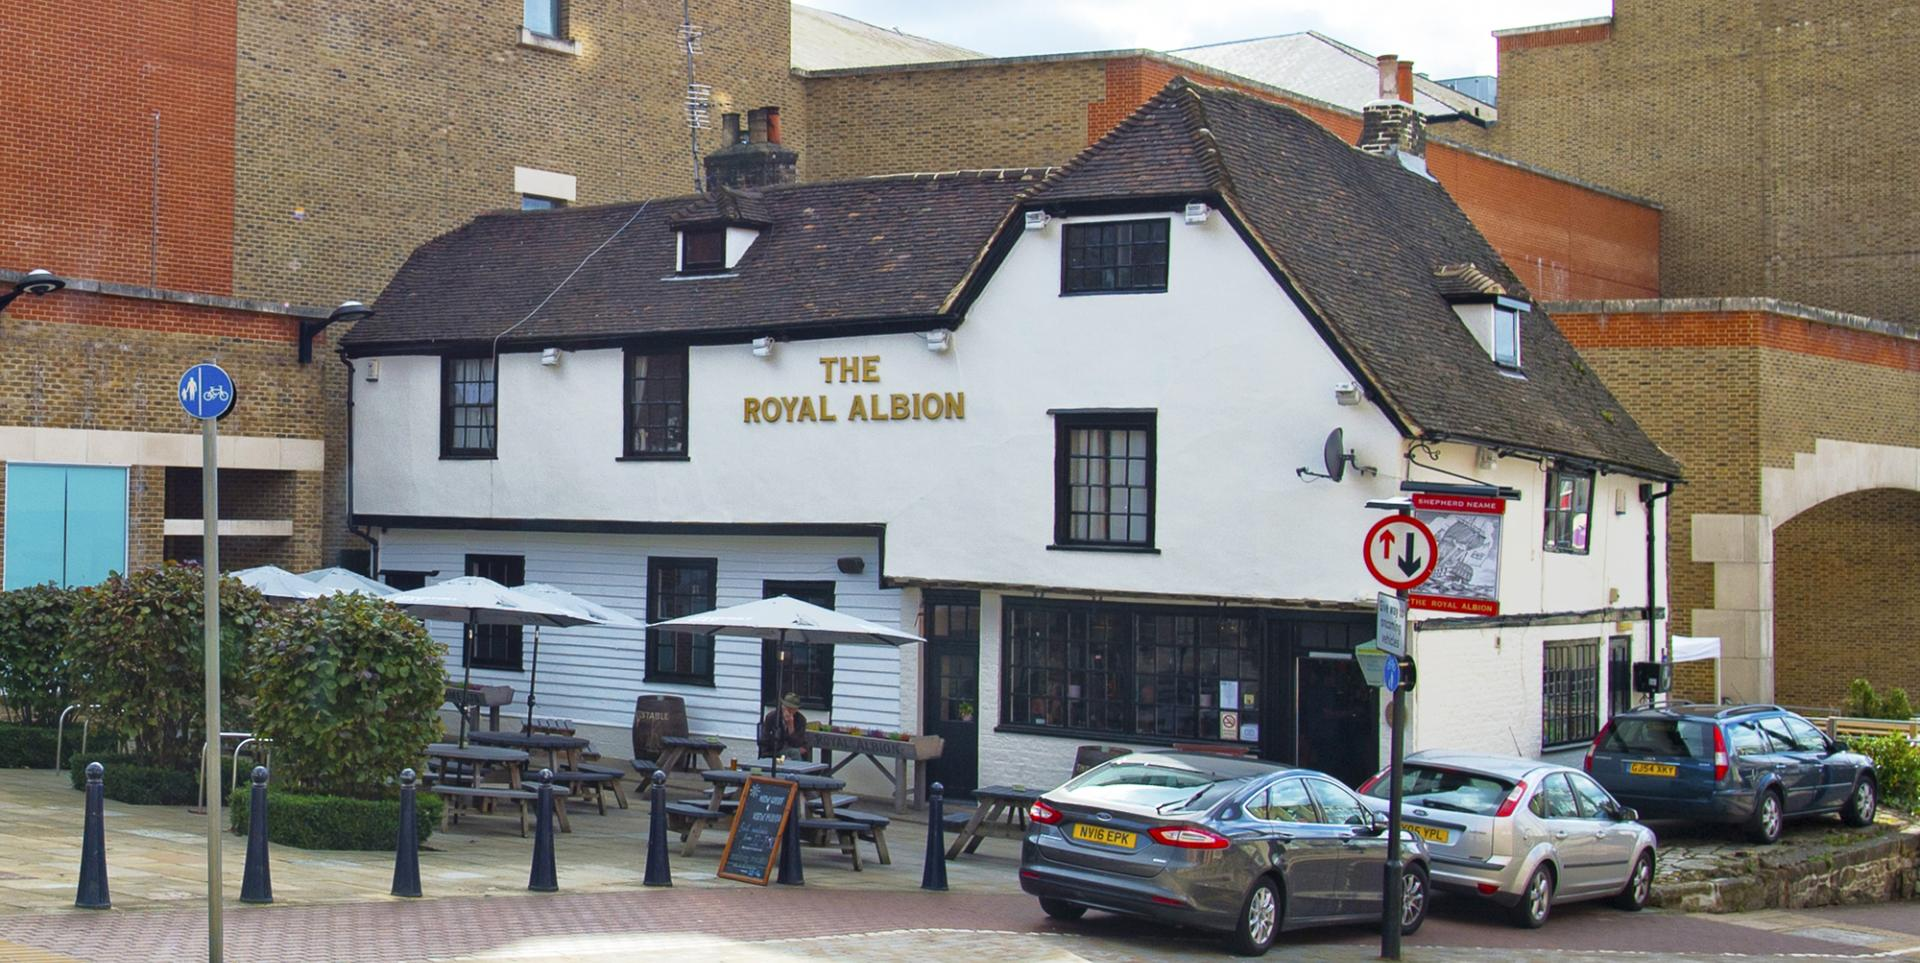 Royal Albion, Maidstone